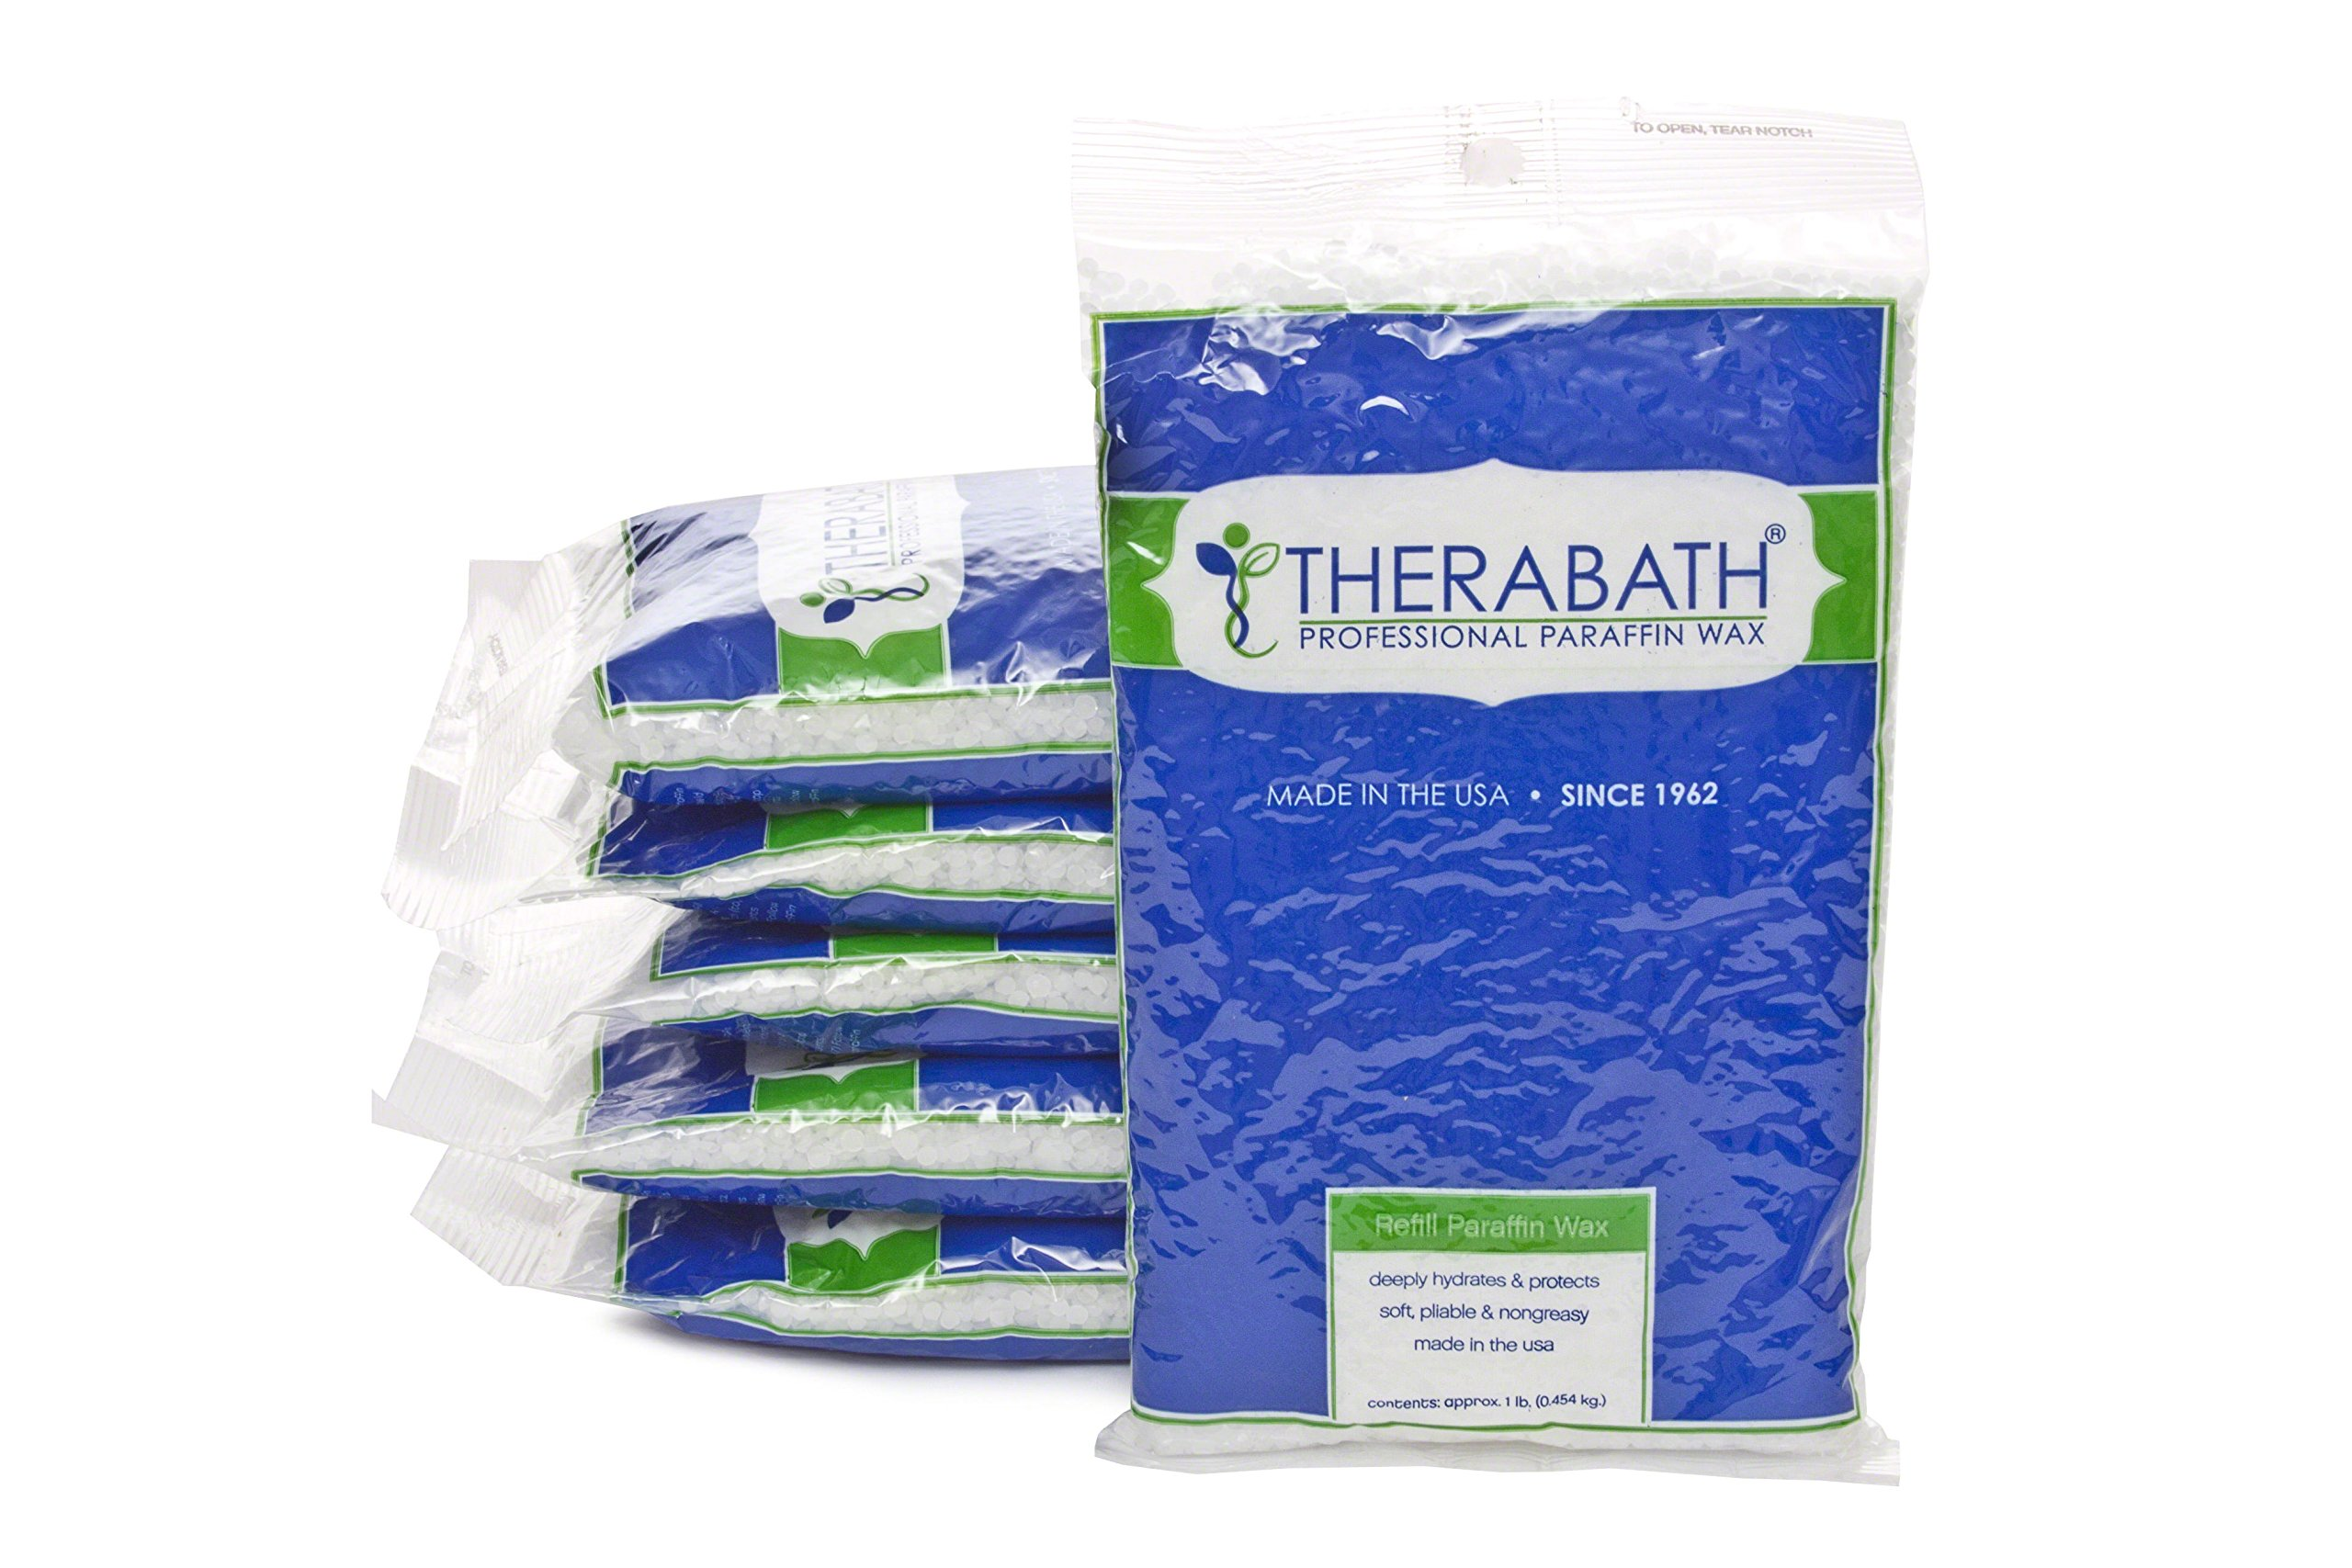 Therabath Paraffin Wax Refill - Use To Relieve Arthritis Pain and Stiff Muscles - Deeply Hydrates and Protects - 24lbs Scent Free by Therabath (Image #3)